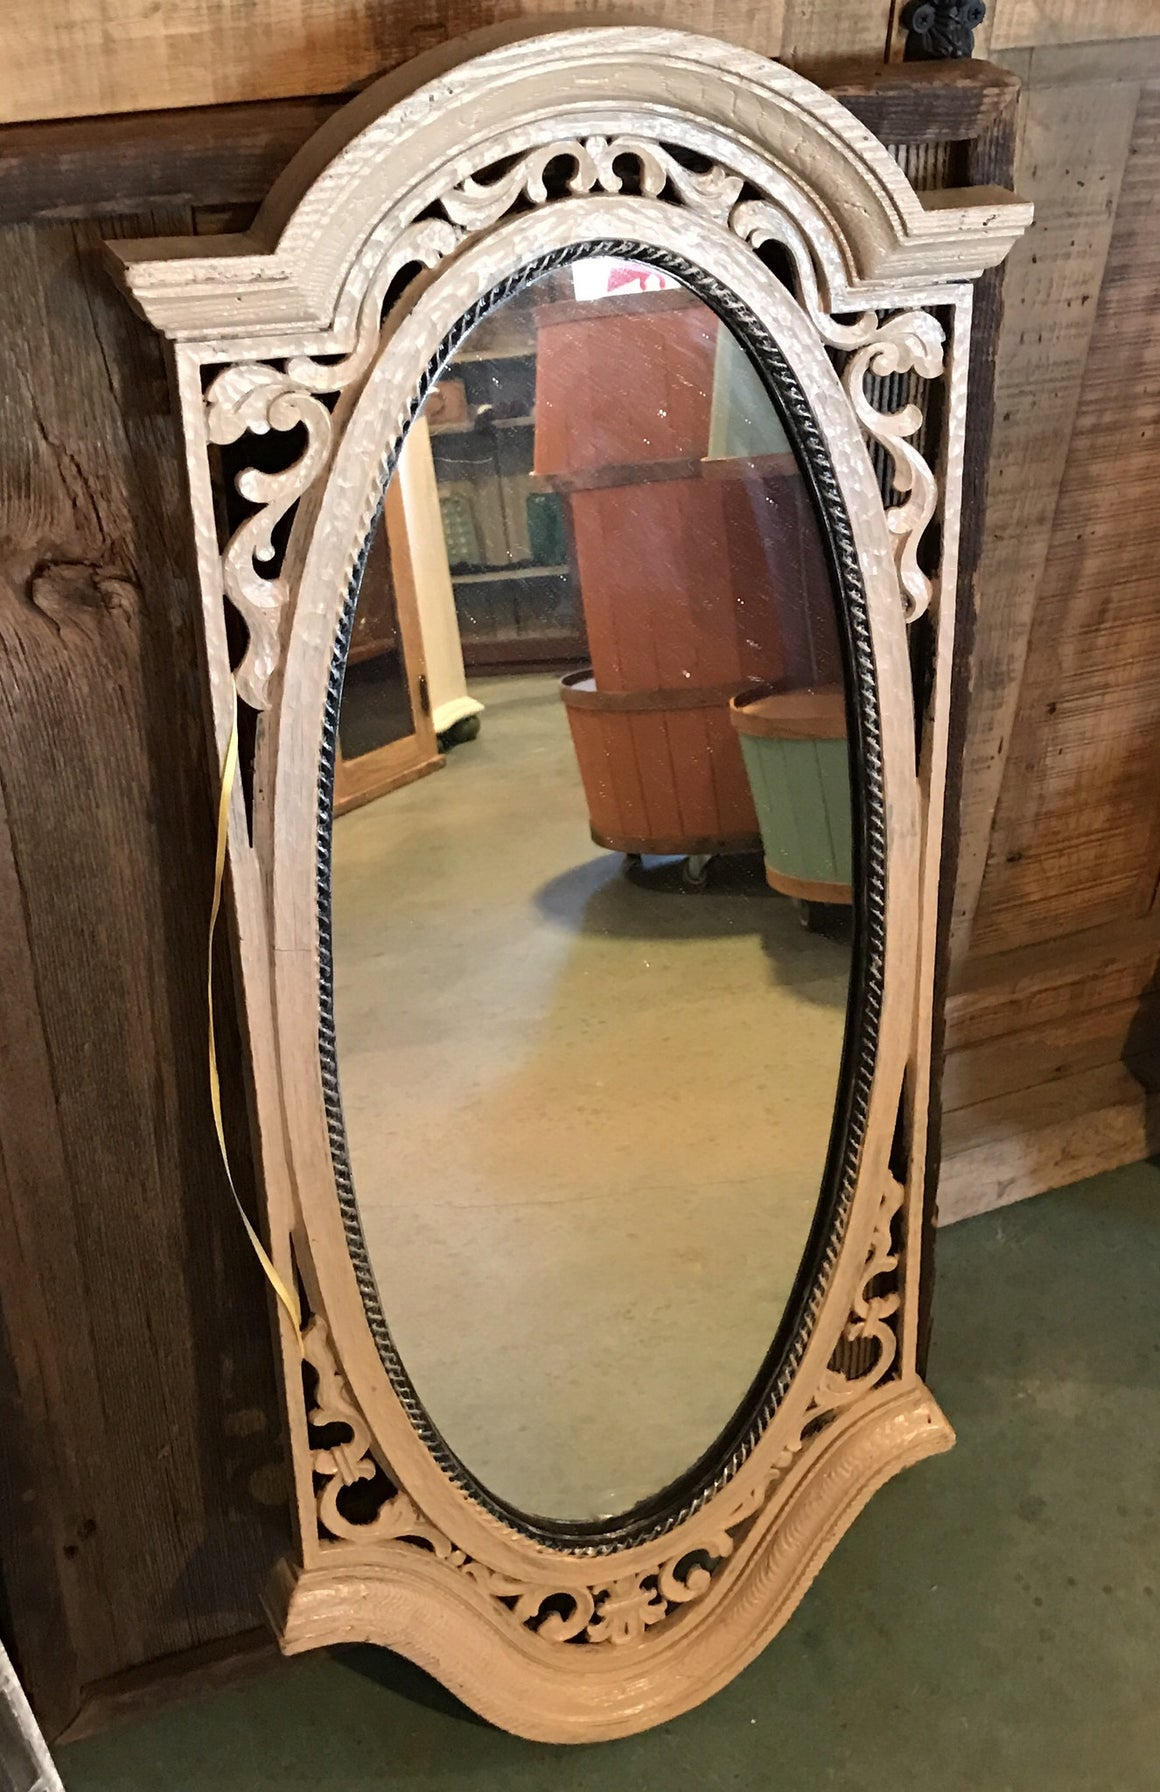 Vintage Look Mirror - VINTAGE JOURNEY MARKET - Upcycling & Restoration